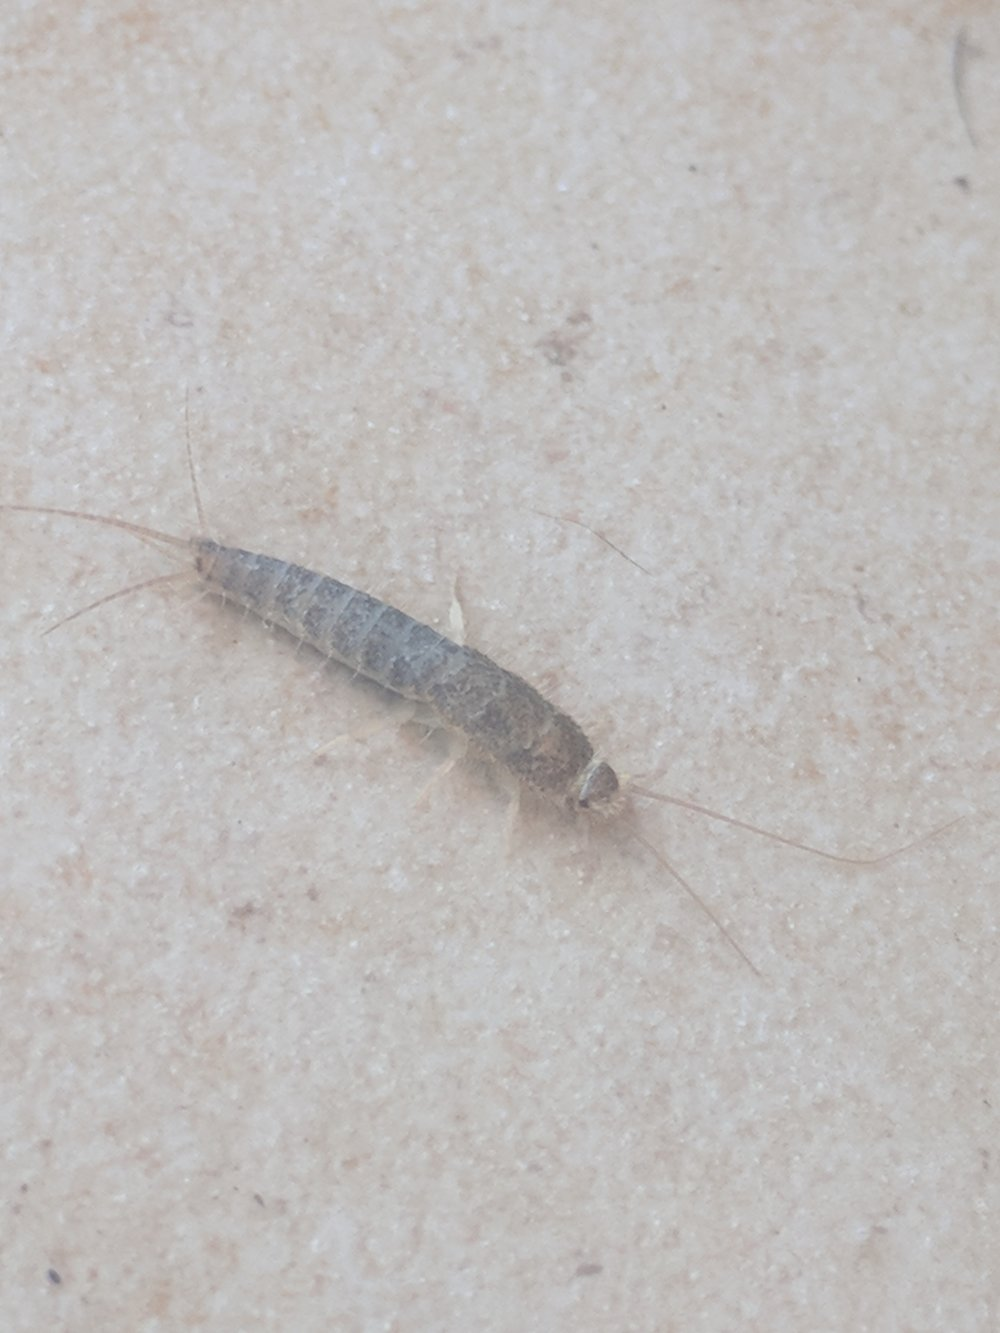 Image:  Grey Silverfish    (Ctenolepisma longicaudata)   by   superherosunite    CC BY-NC